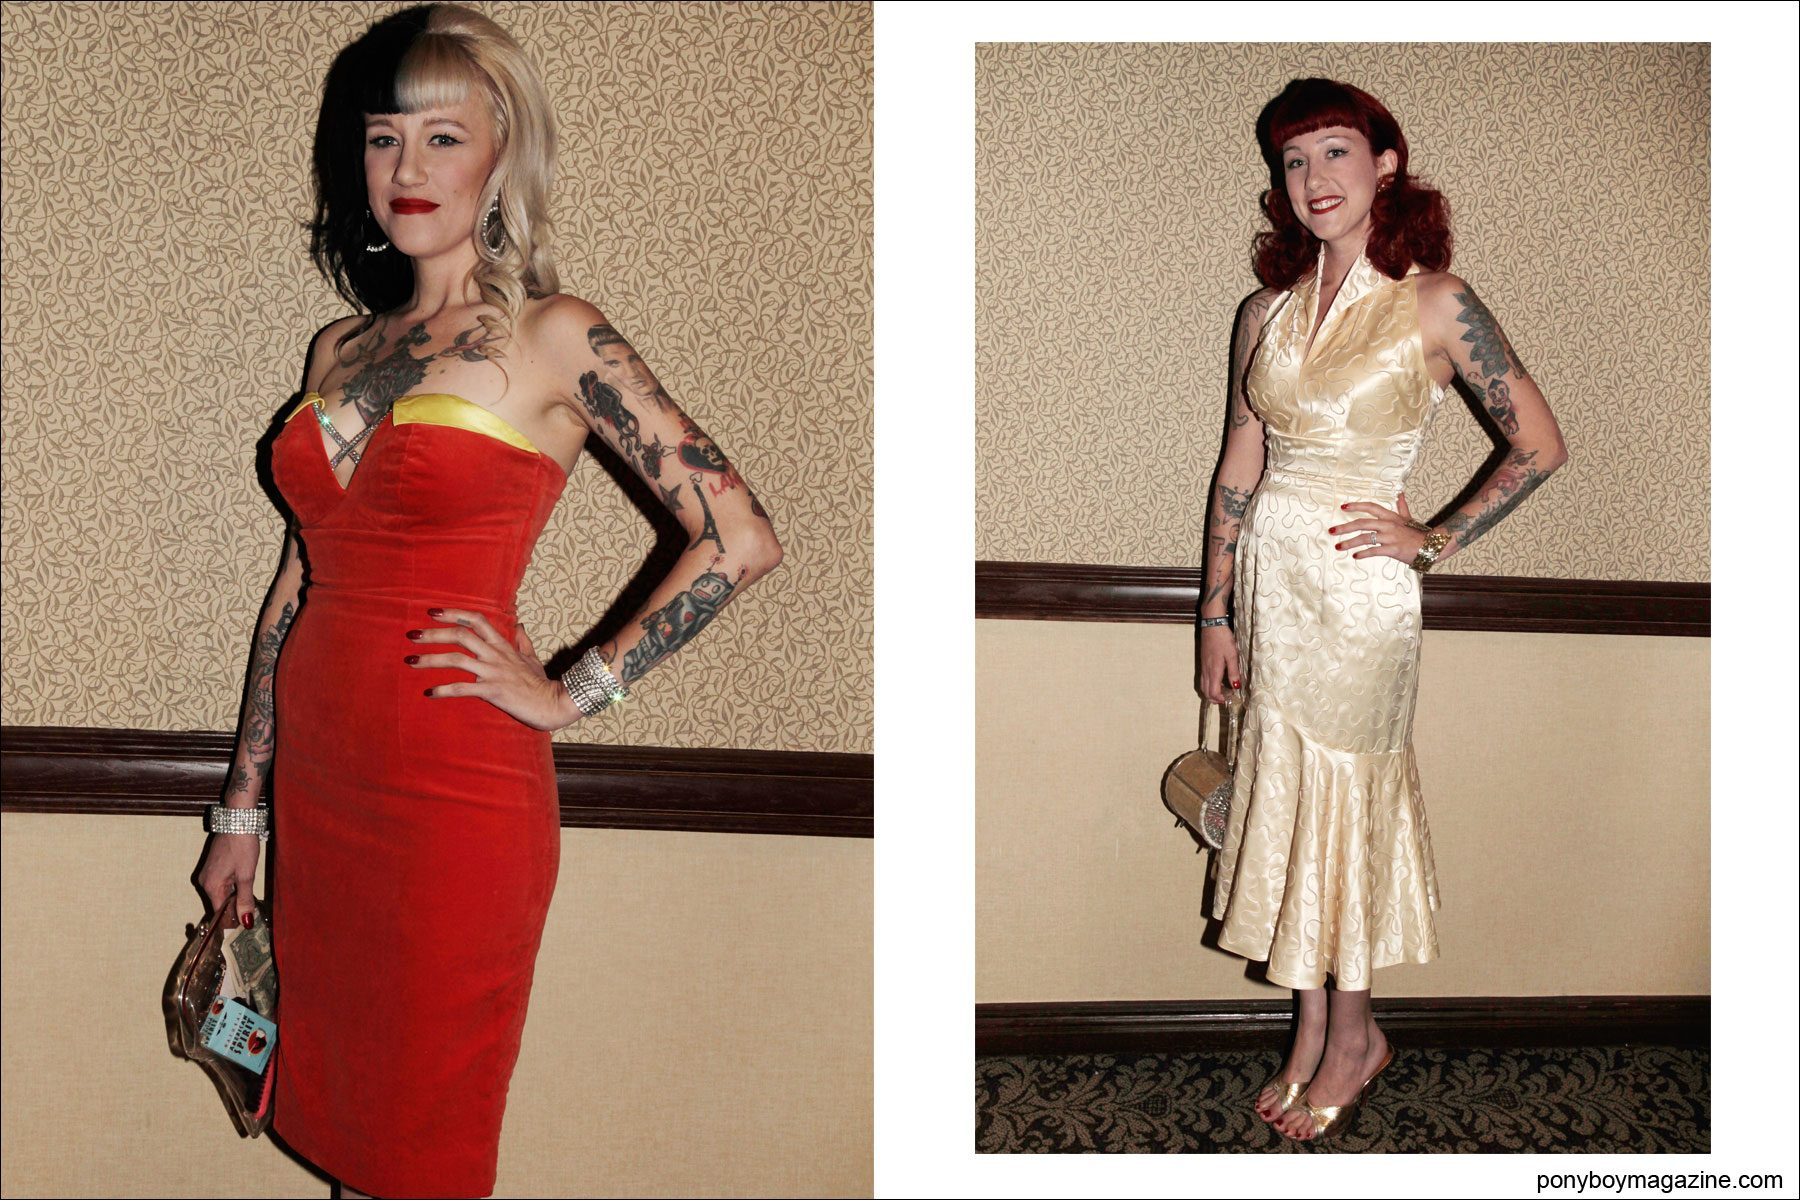 1950's women's cocktail dresses photographed at rockabilly weekender Viva Las Vegas 17 by Alexander Thompson for Ponyboy Magazine.